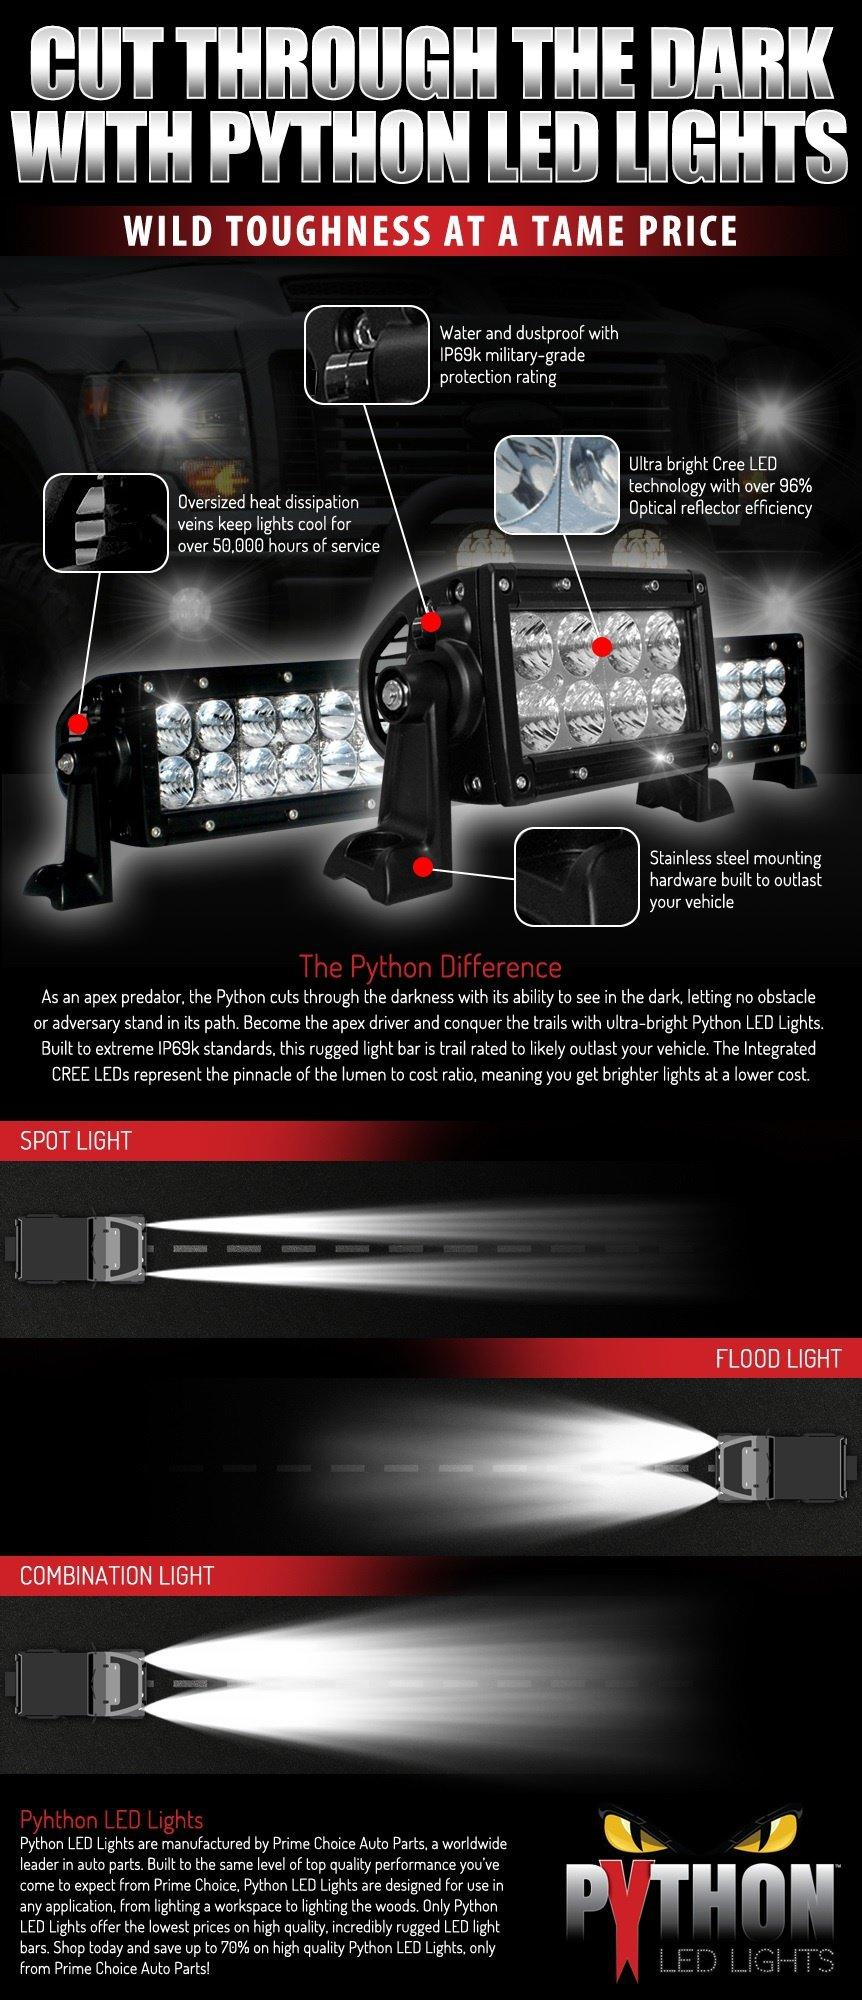 Cut through the dark with Python LED Lights, Wild toughness at a tame price, spot light, flood light, water and dustproof